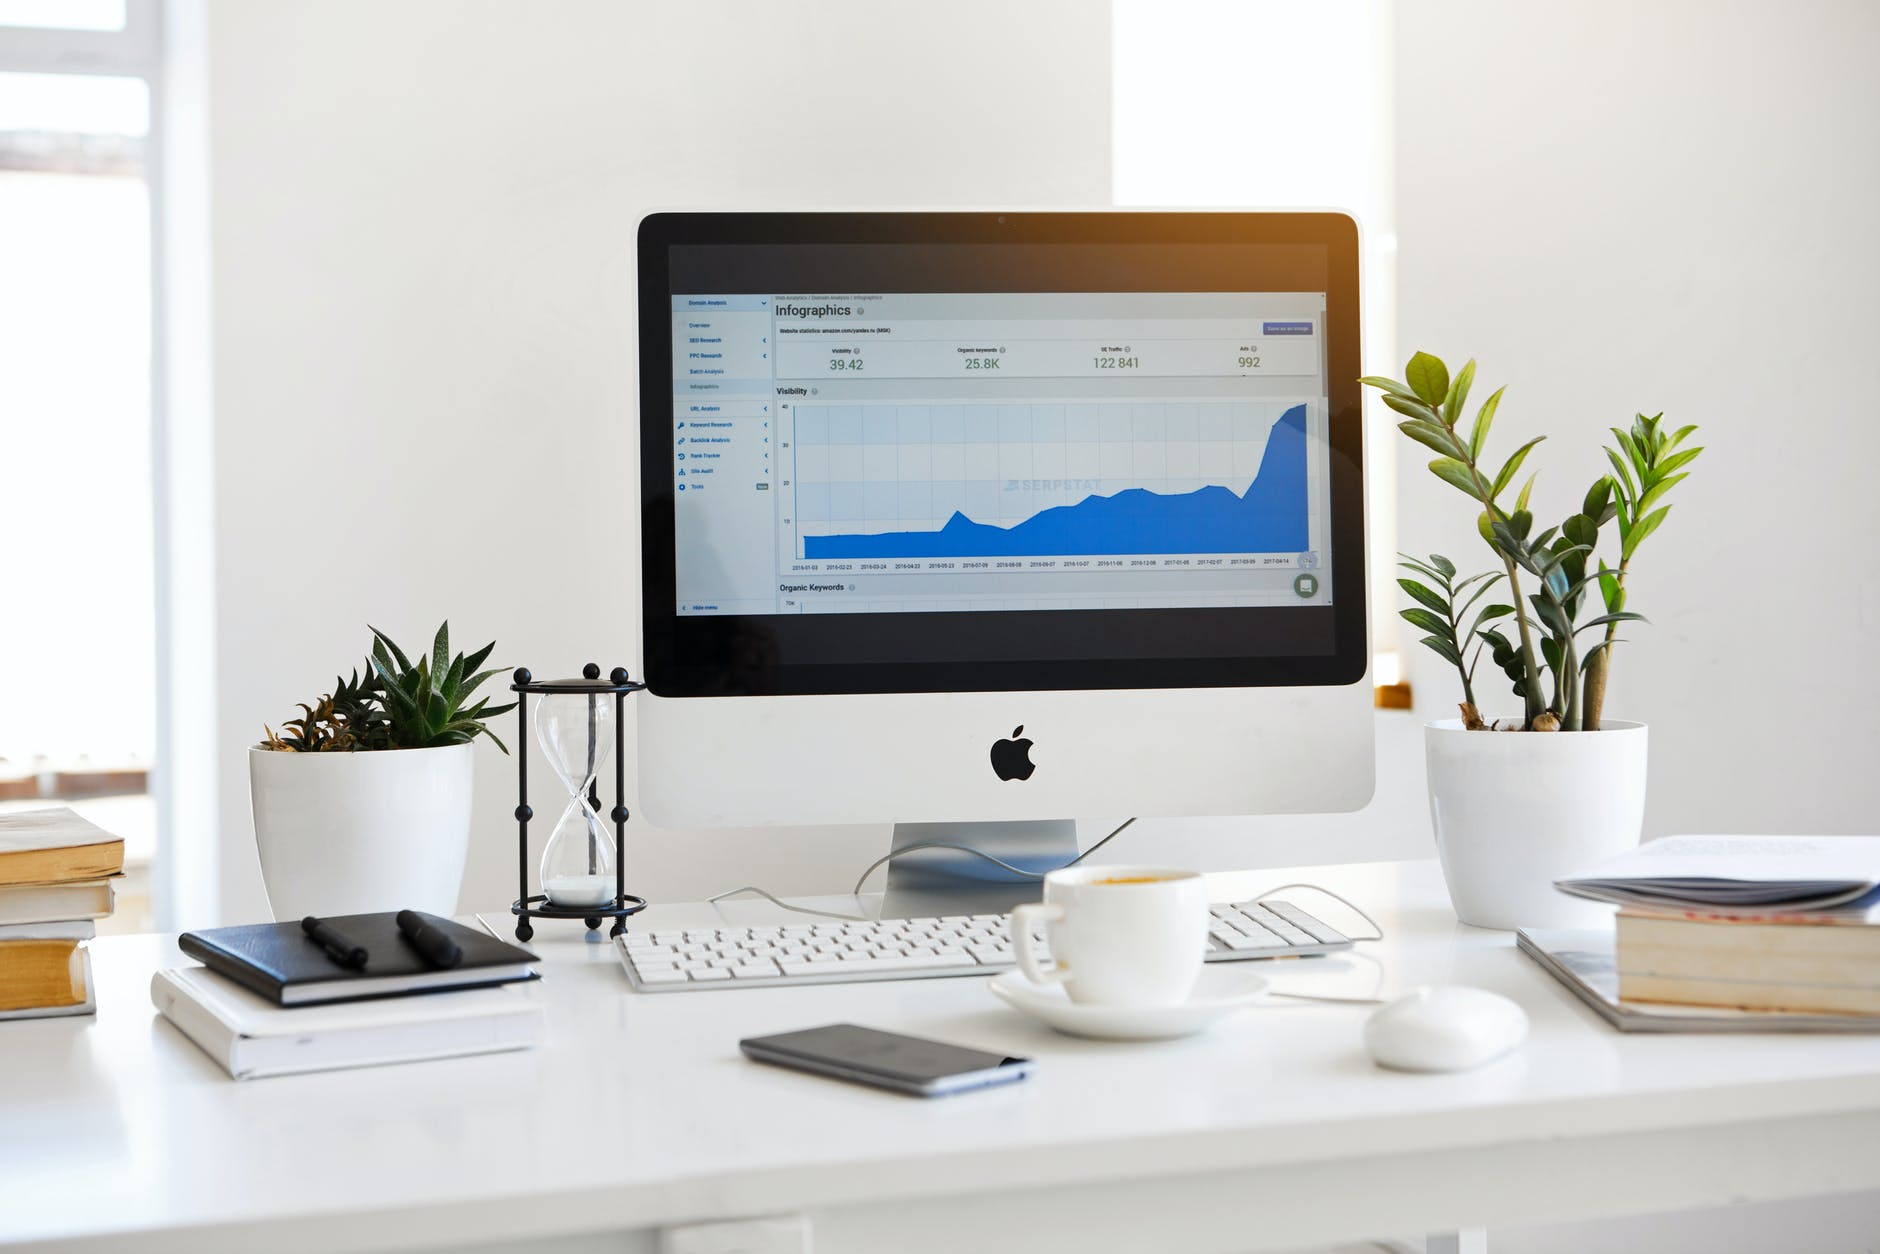 Building A Market Index With Python